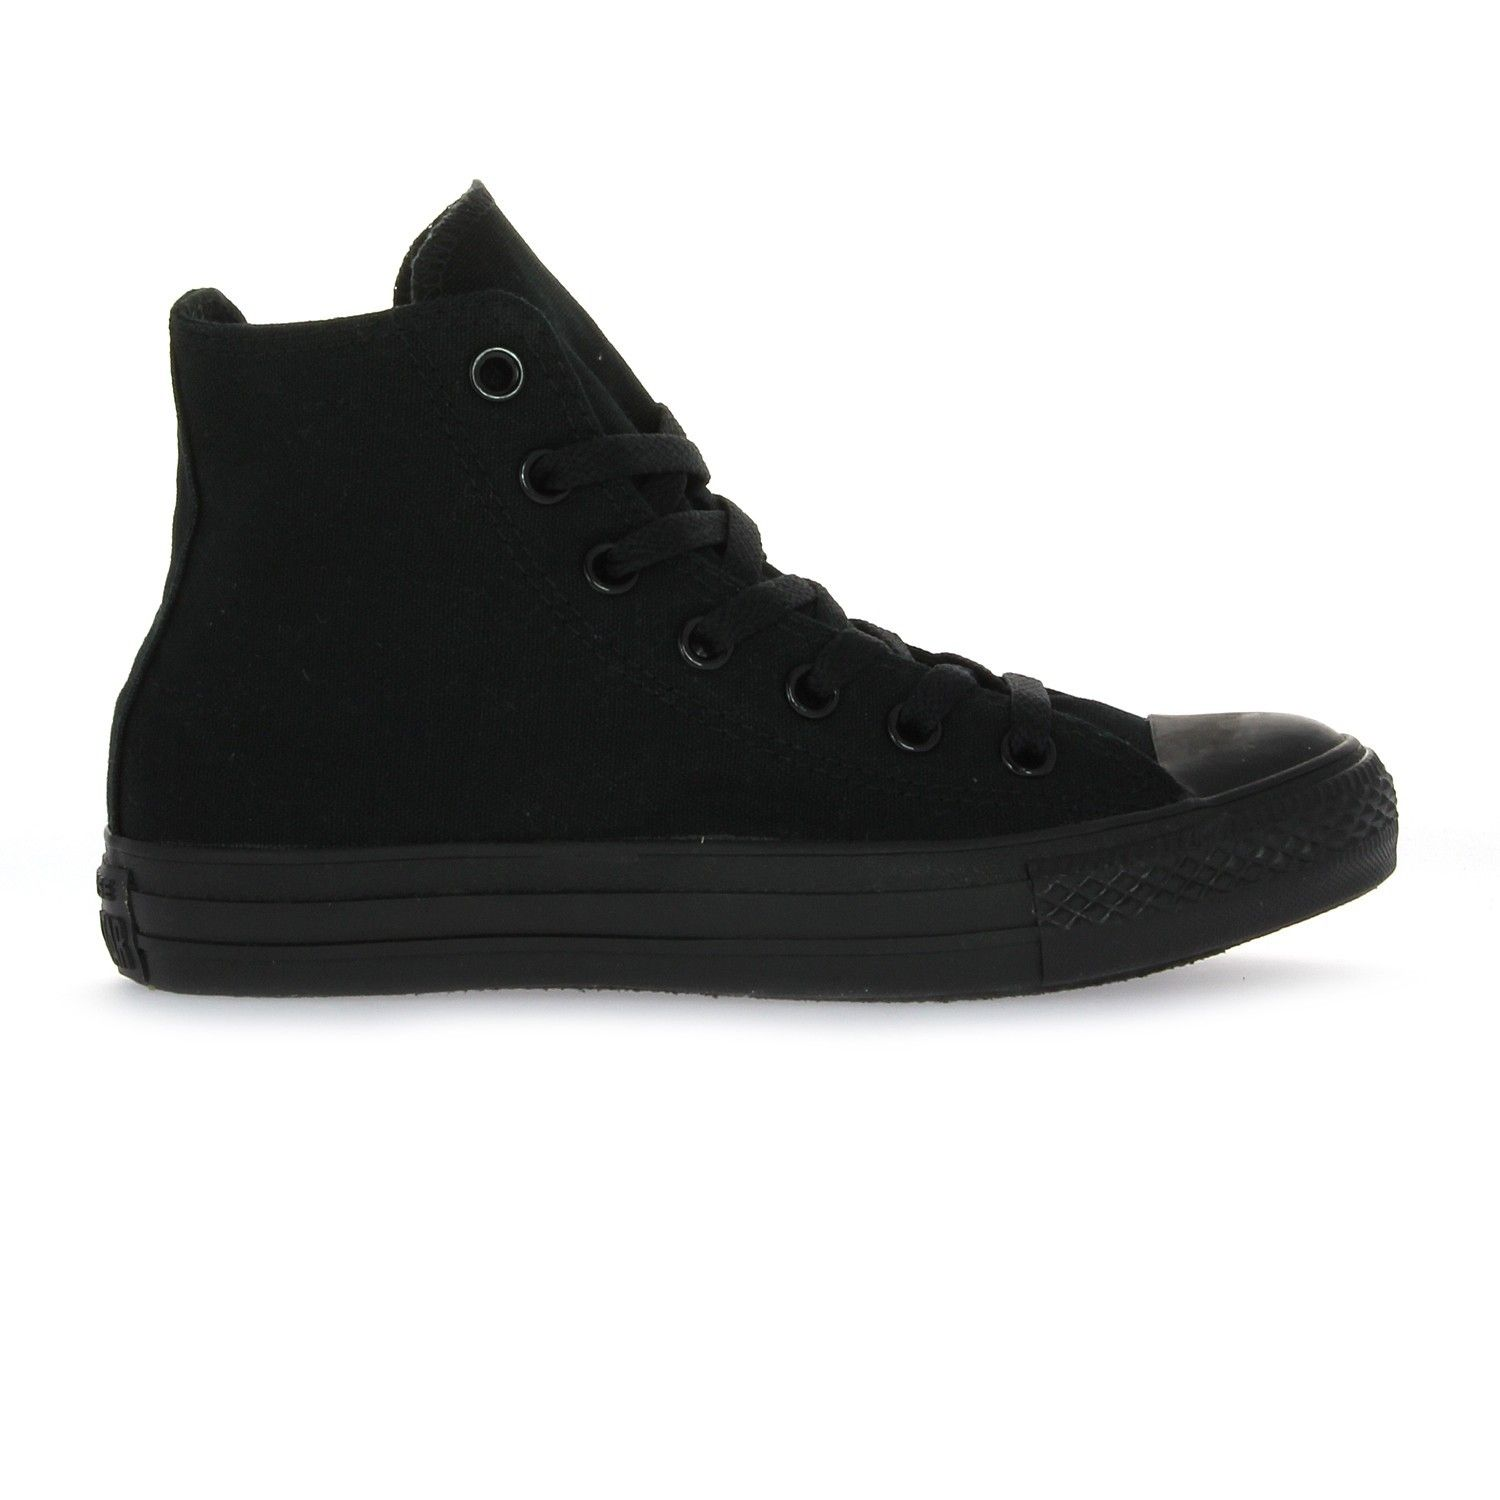 converse chuck taylor all star m/f/gs